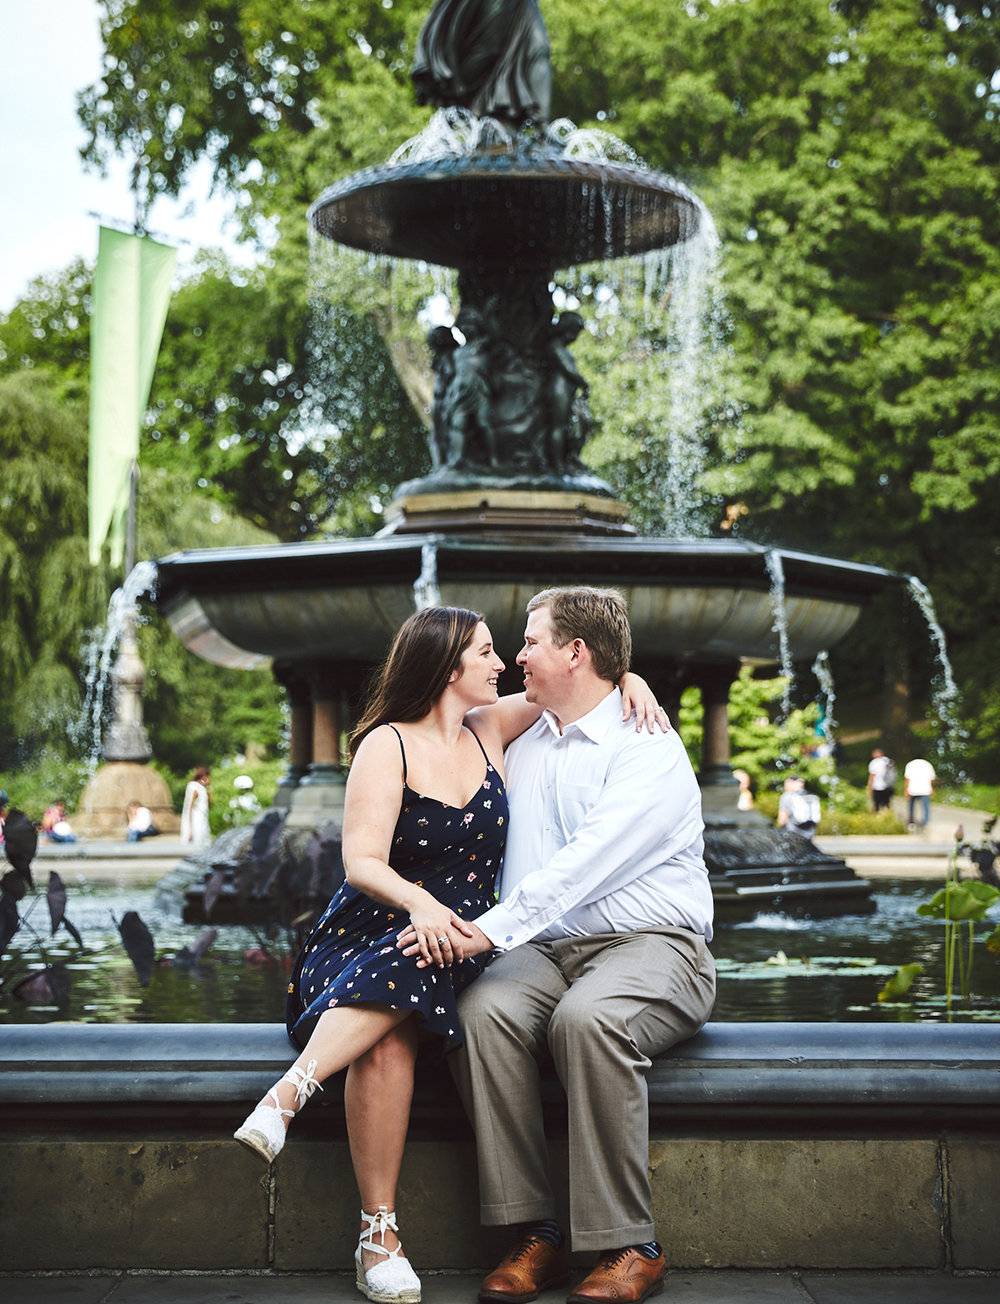 170811_EngagementPhotography_CentralParkEngagement_By_BriJohnsonWeddings_0017.jpg